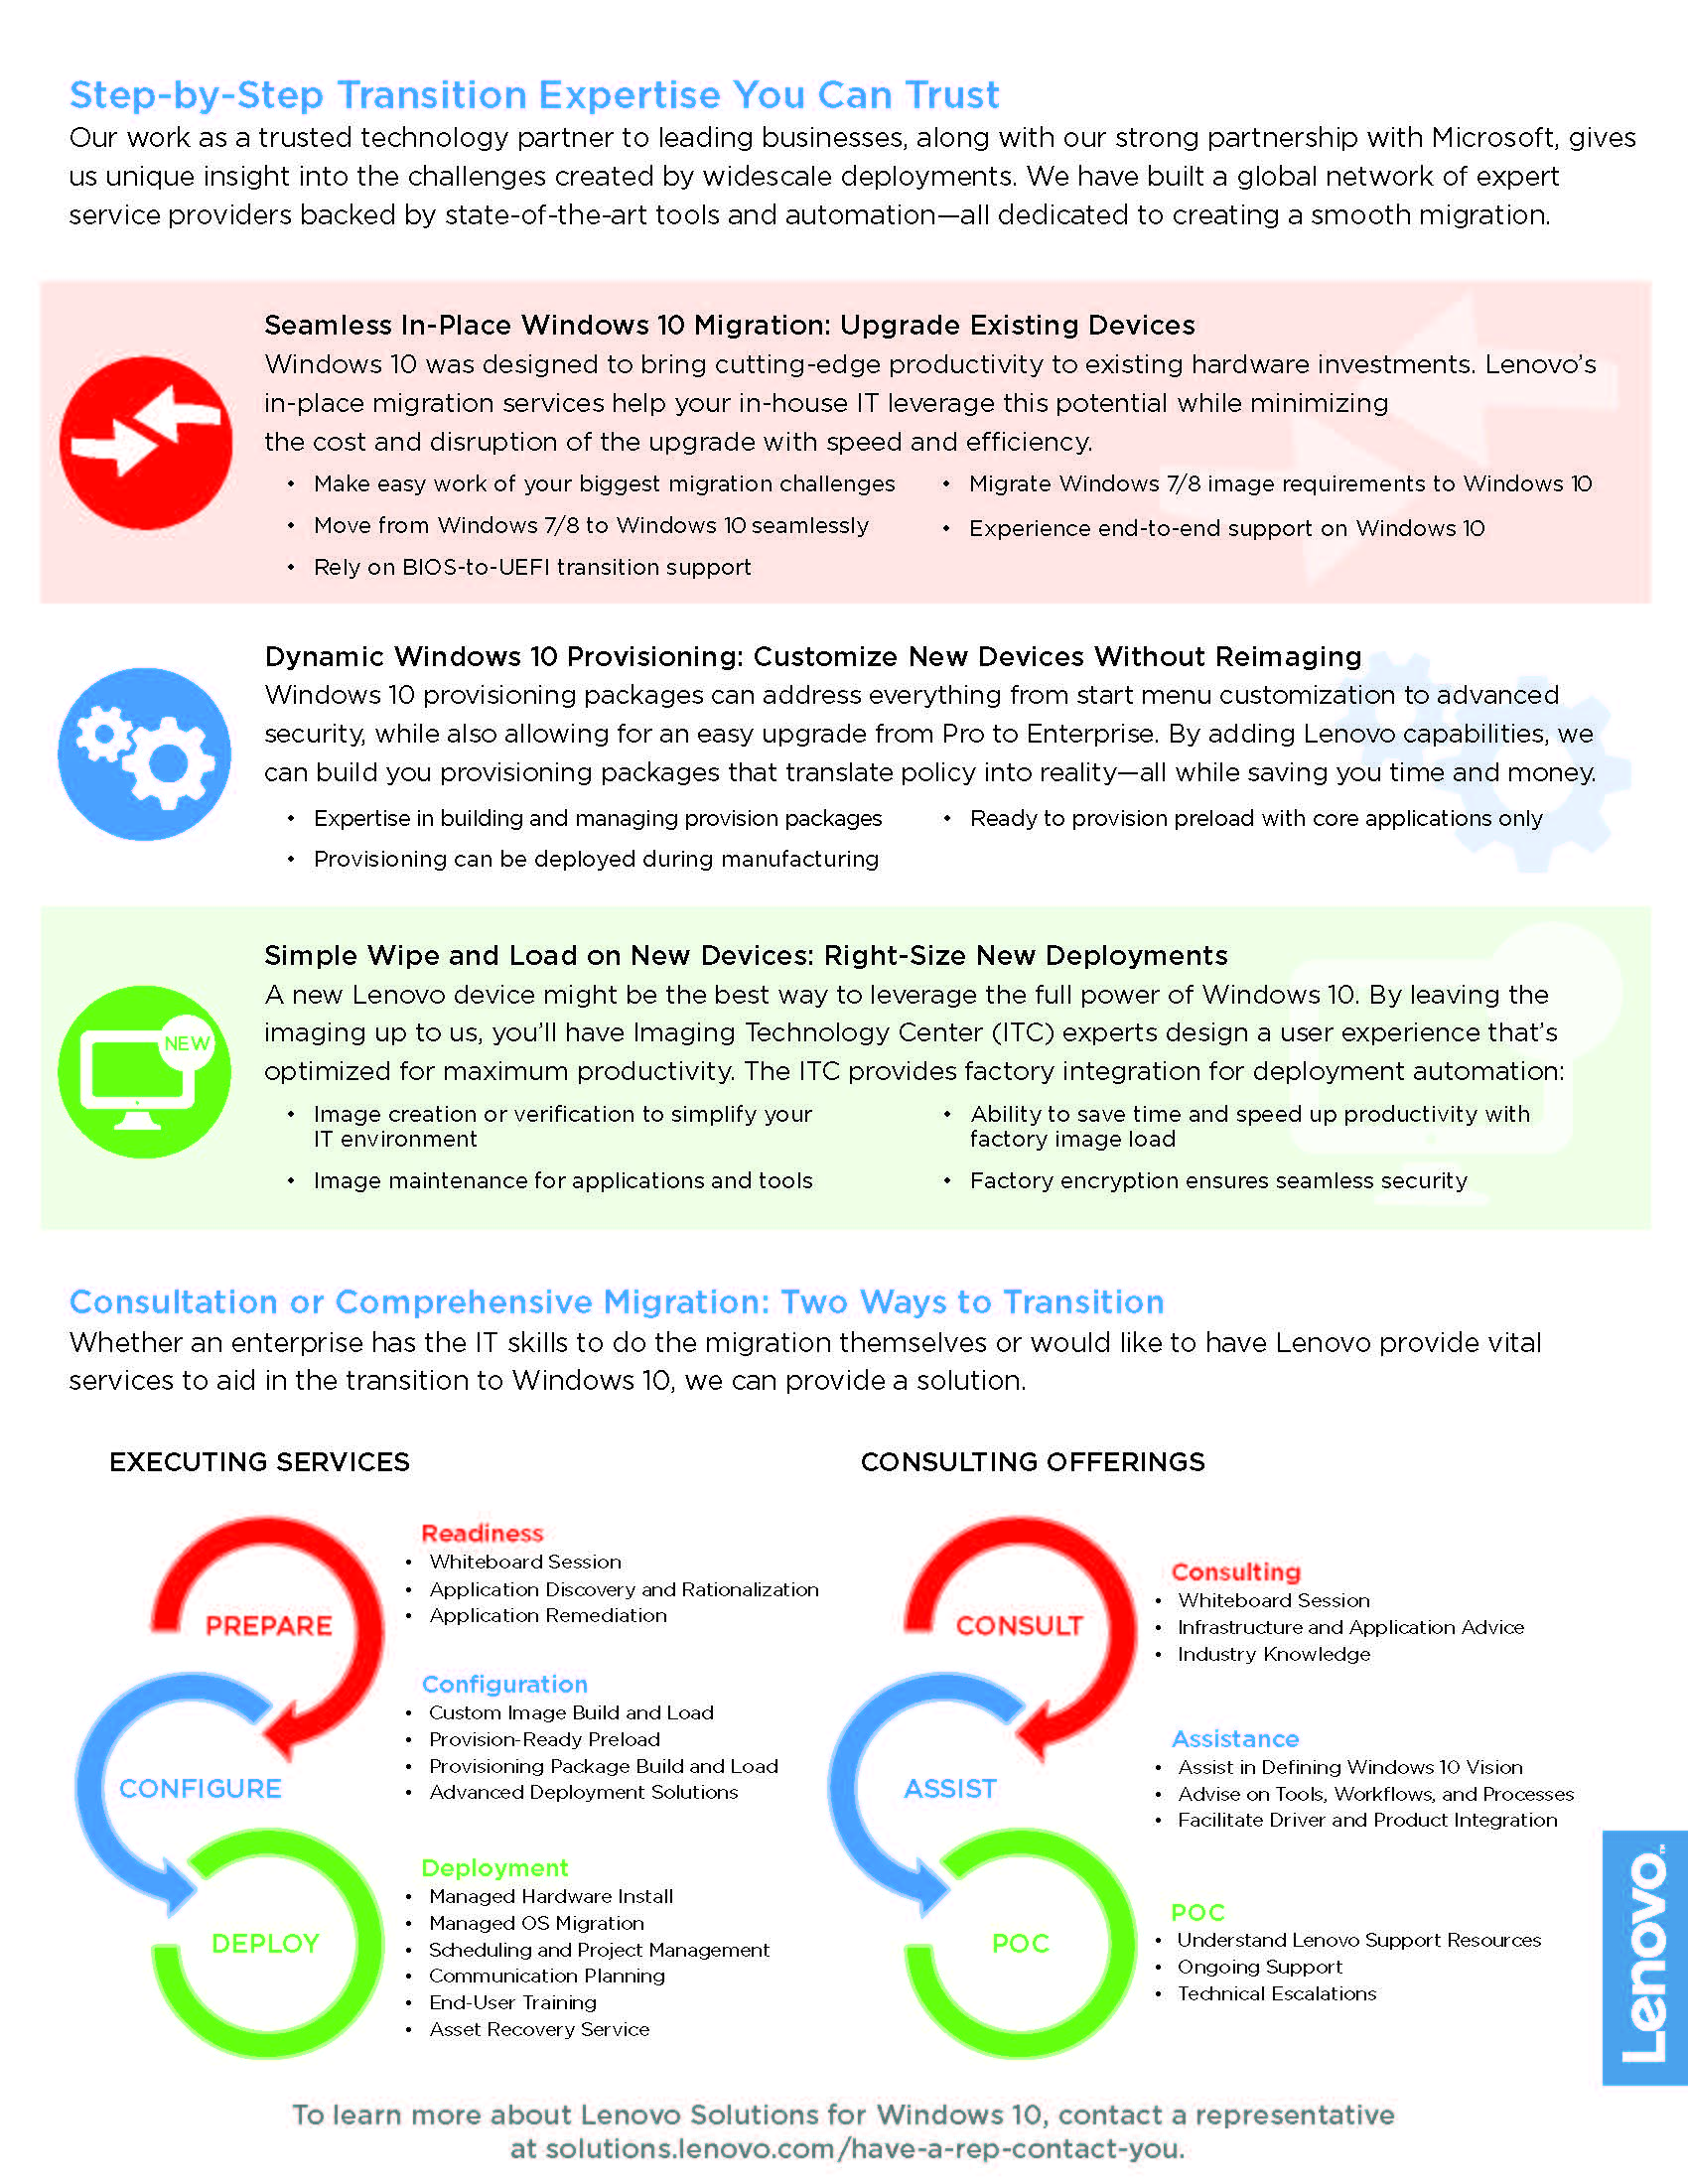 LEN_0816_1468_WW_Windows10 Migration Solutions Flyer_SH_4.4_Page_3.jpg